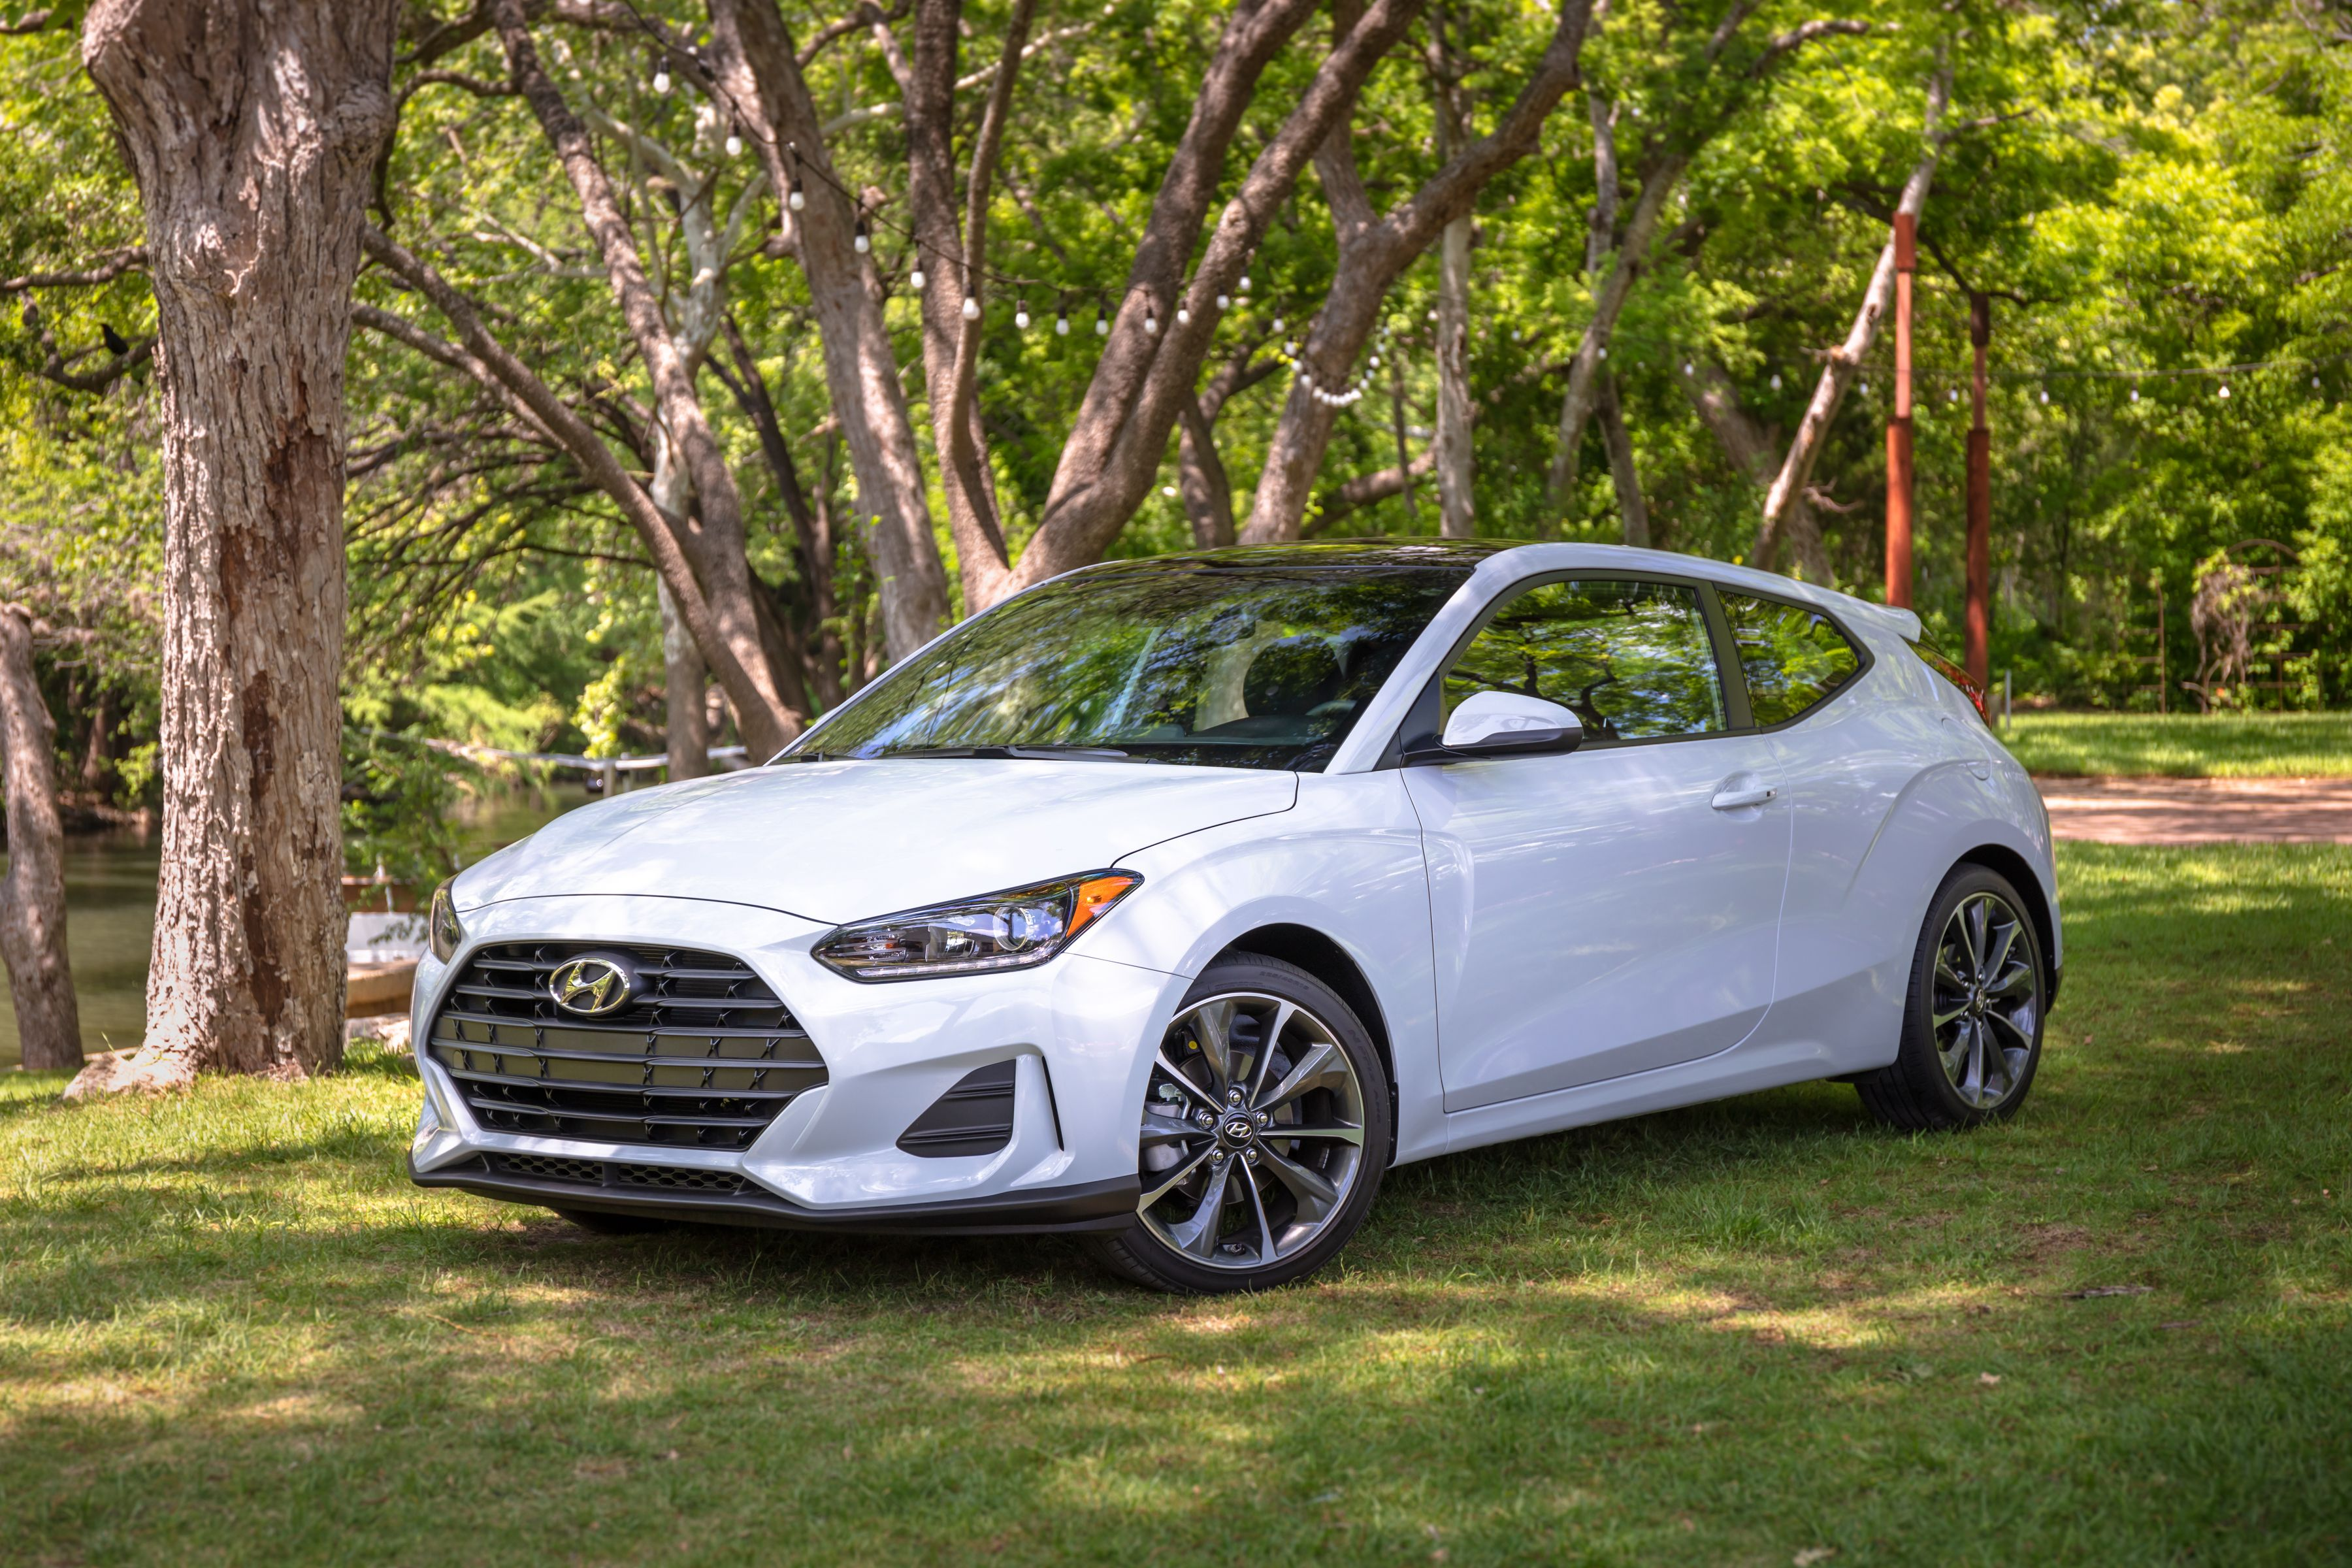 2021 Hyundai Veloster Review, Pricing, and Specs | Hyundai Two Door Car |  | Car and Driver